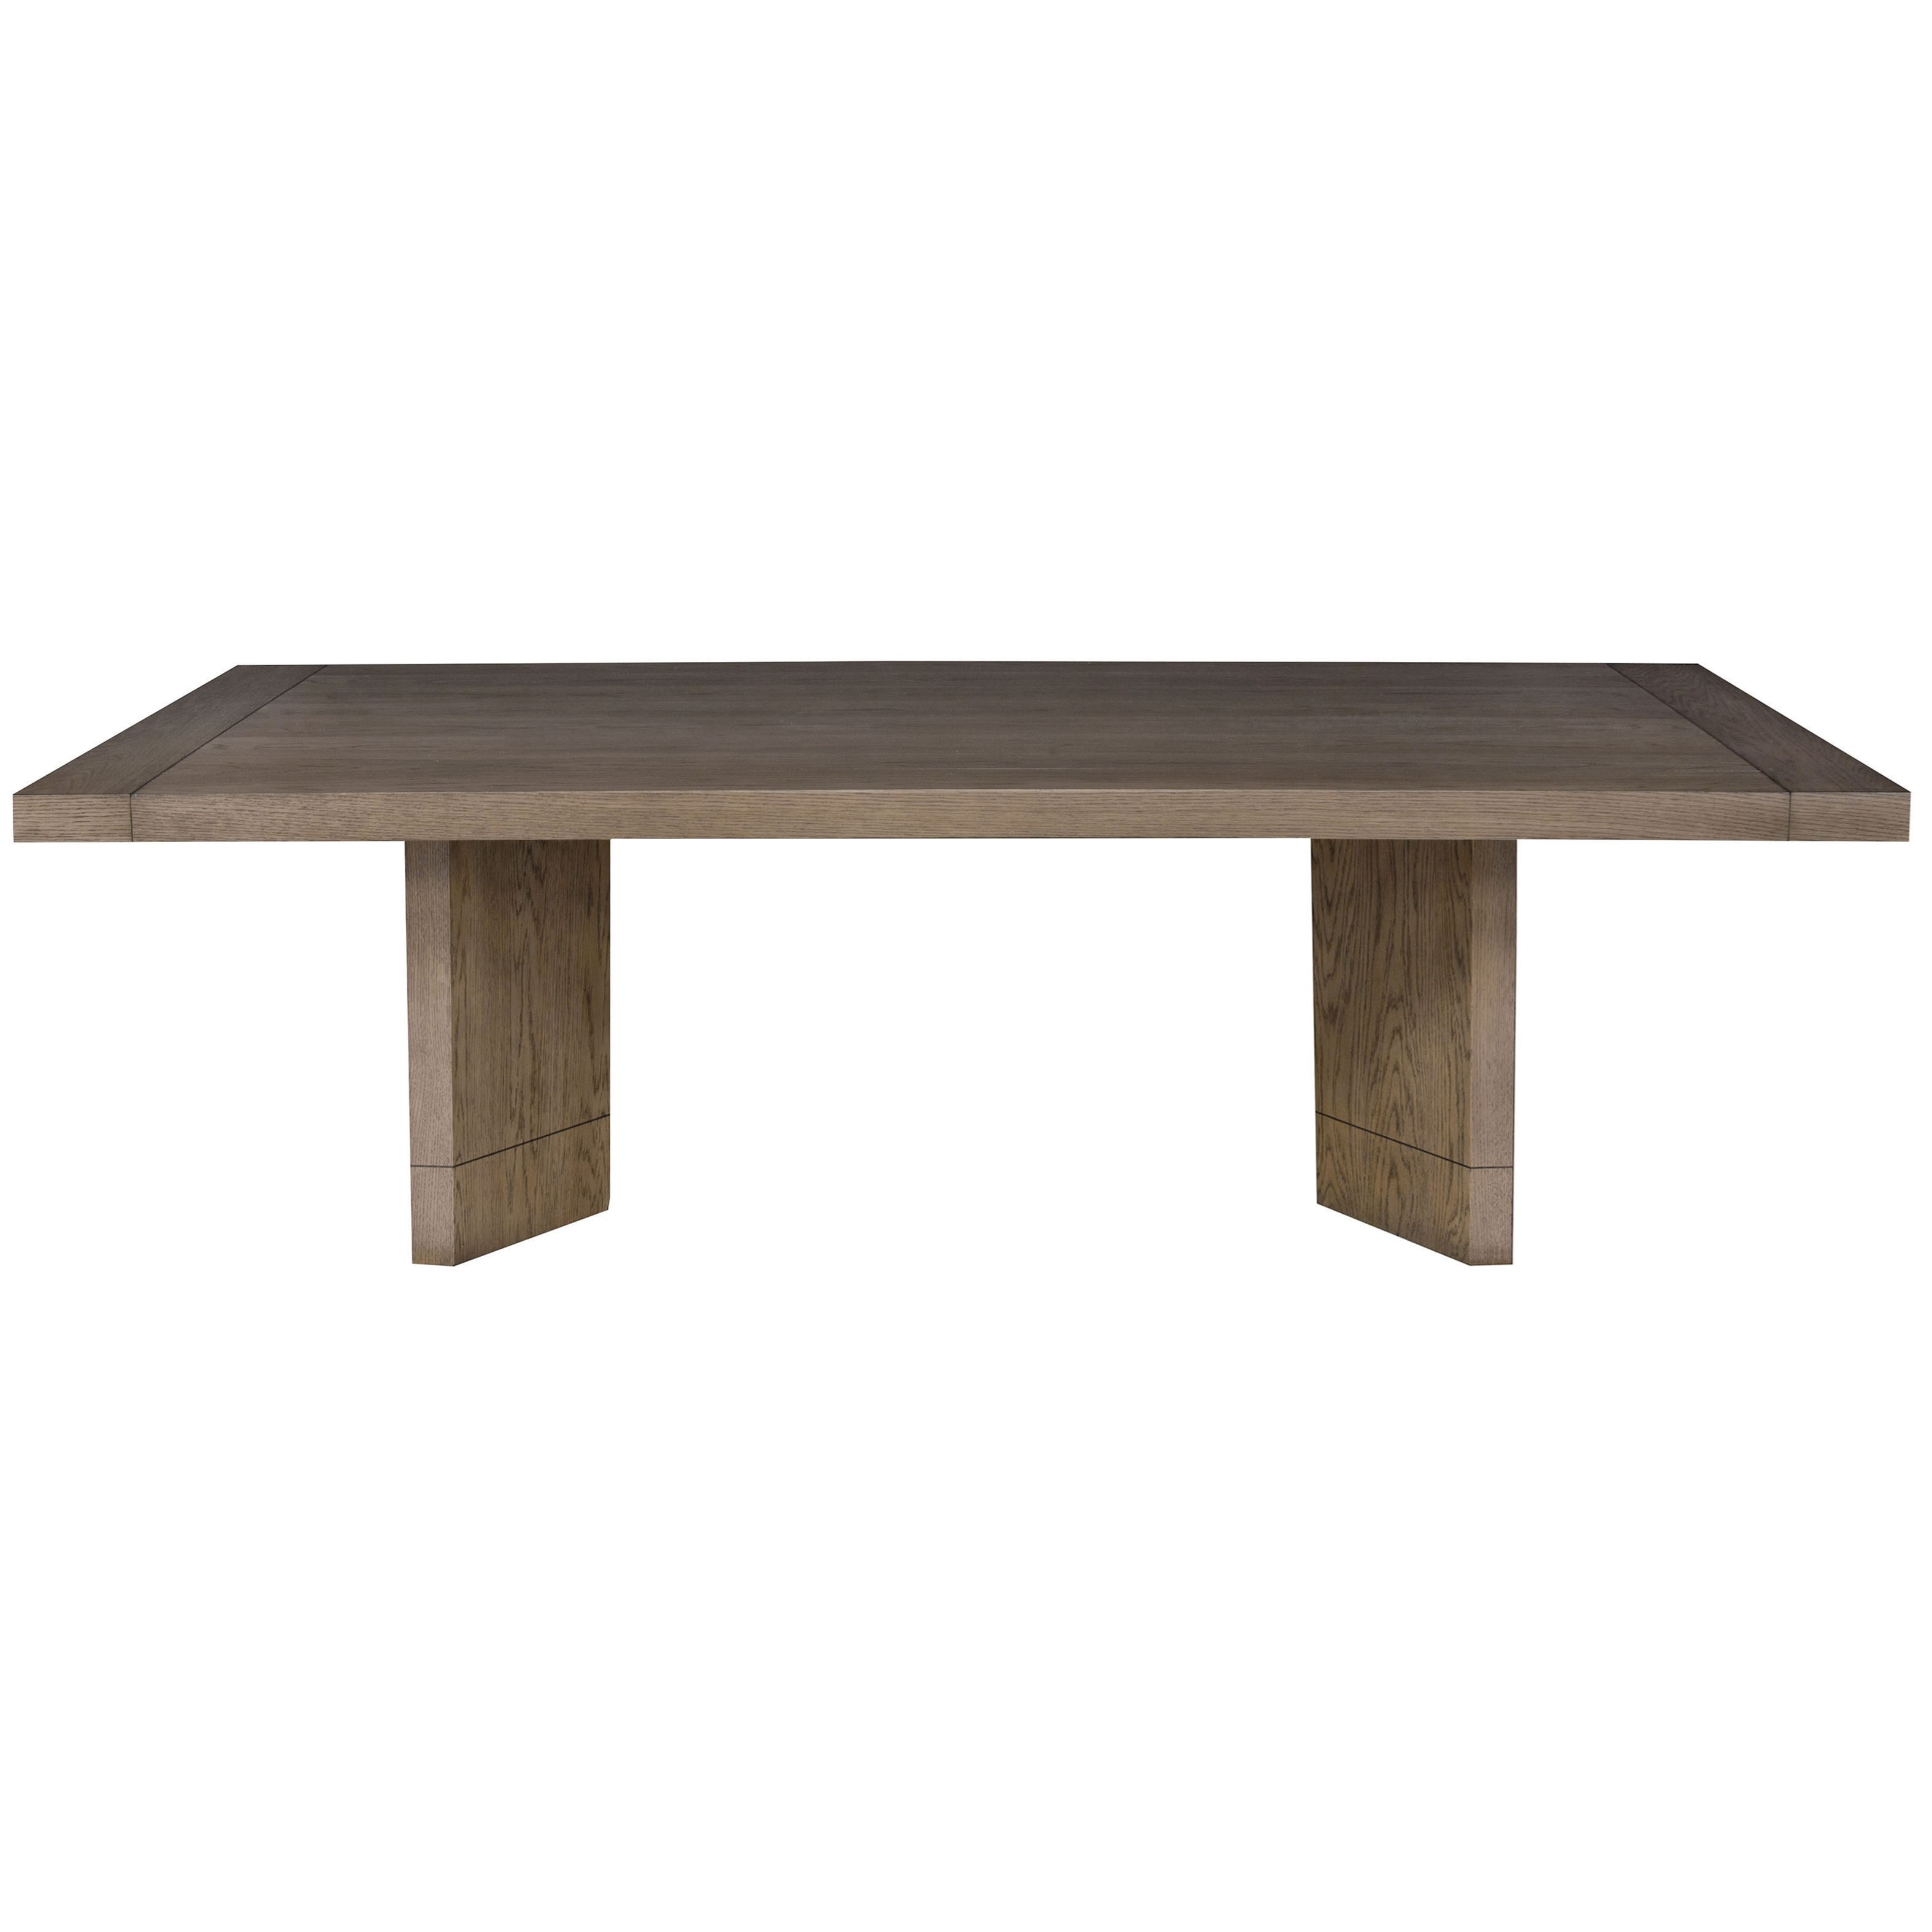 Schiller by Thom Filicia Home Dining Table by Vanguard Furniture at Baer's Furniture